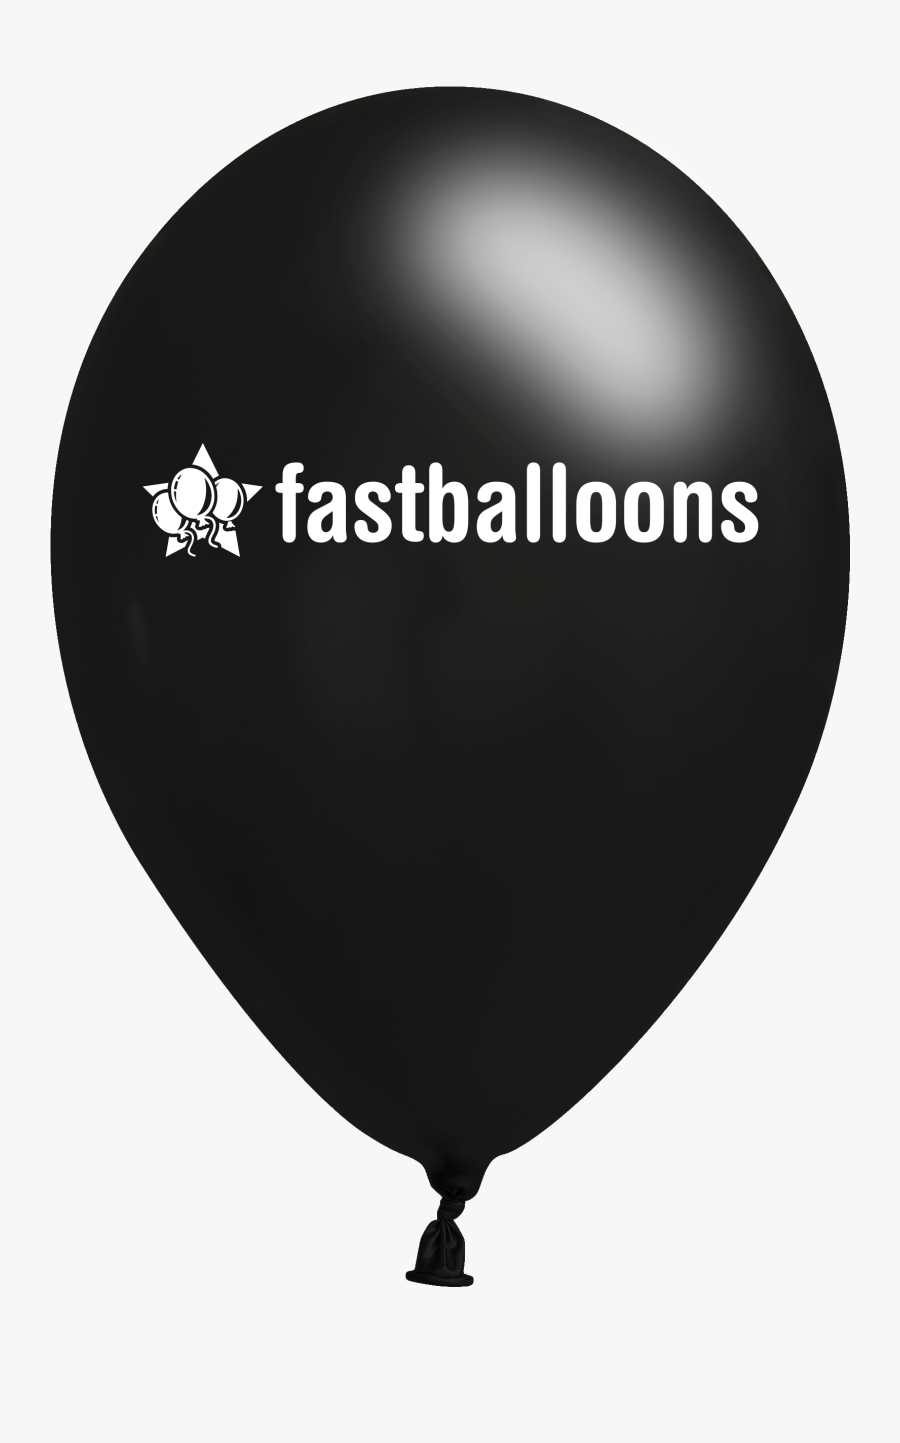 Transparent Party Balloons Clipart Black And White - Balloon, Transparent Clipart